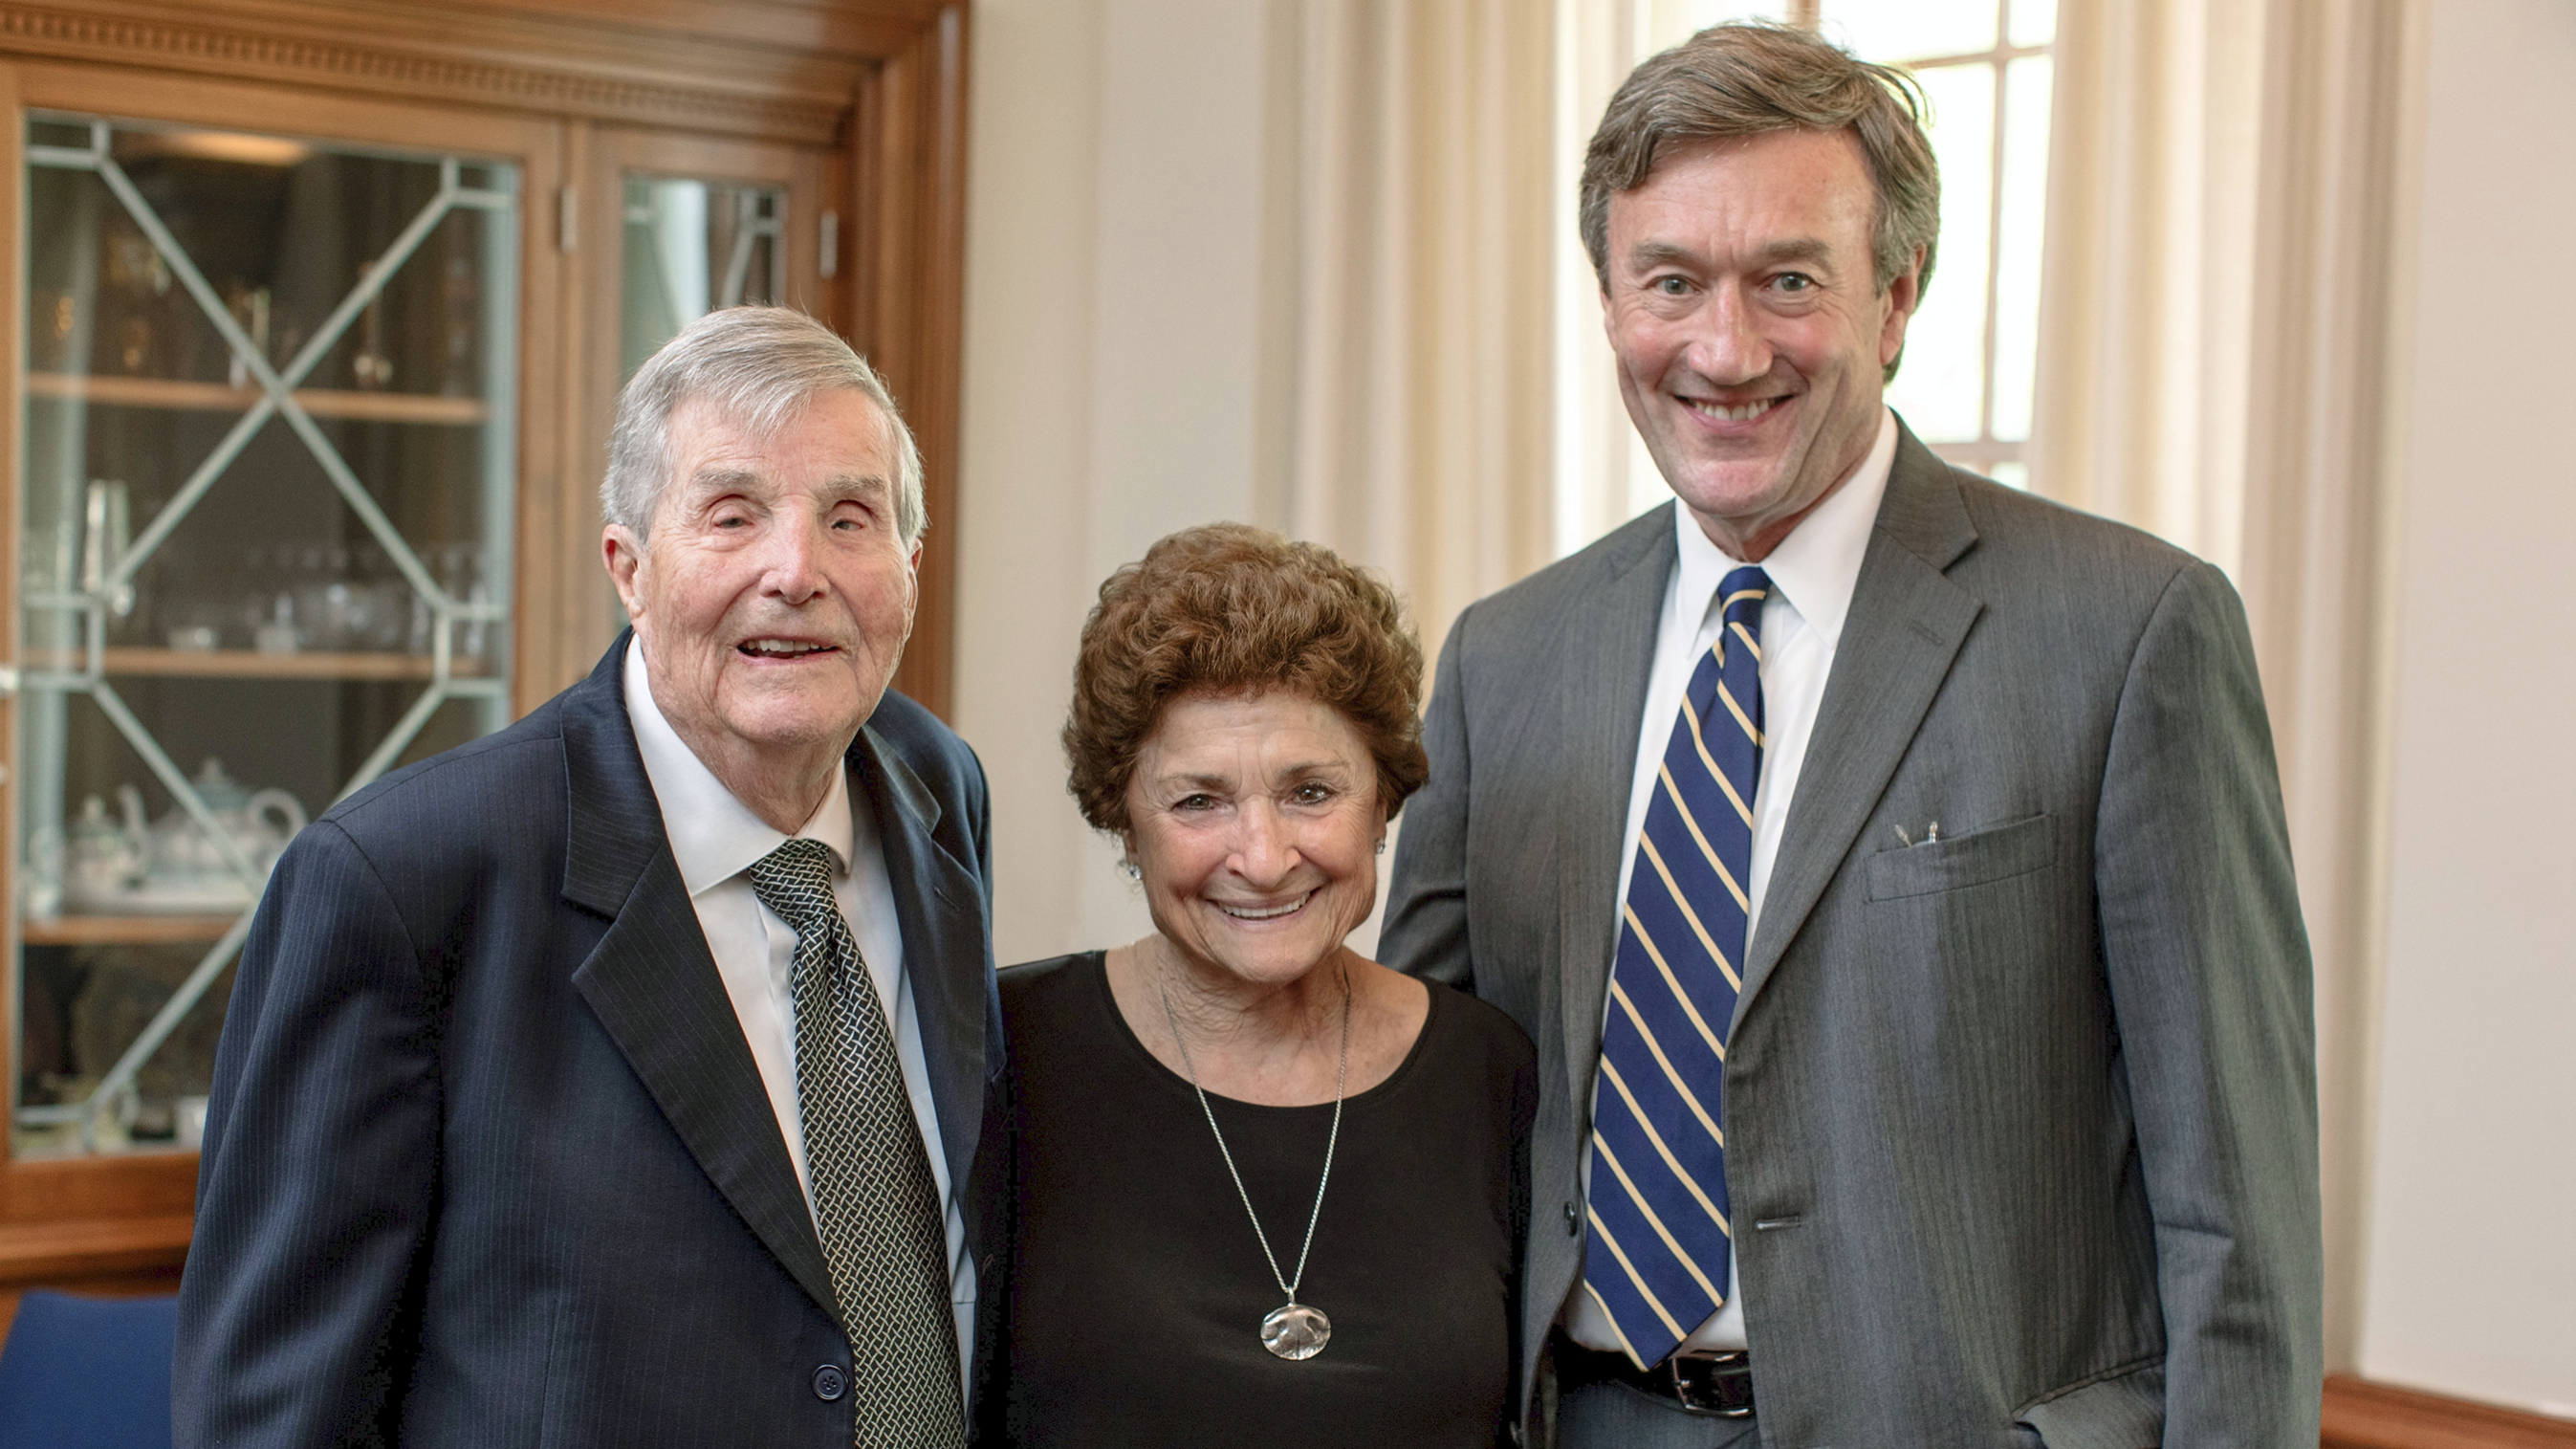 Marilyn and Warren Bateman with Dr. Noseworthy